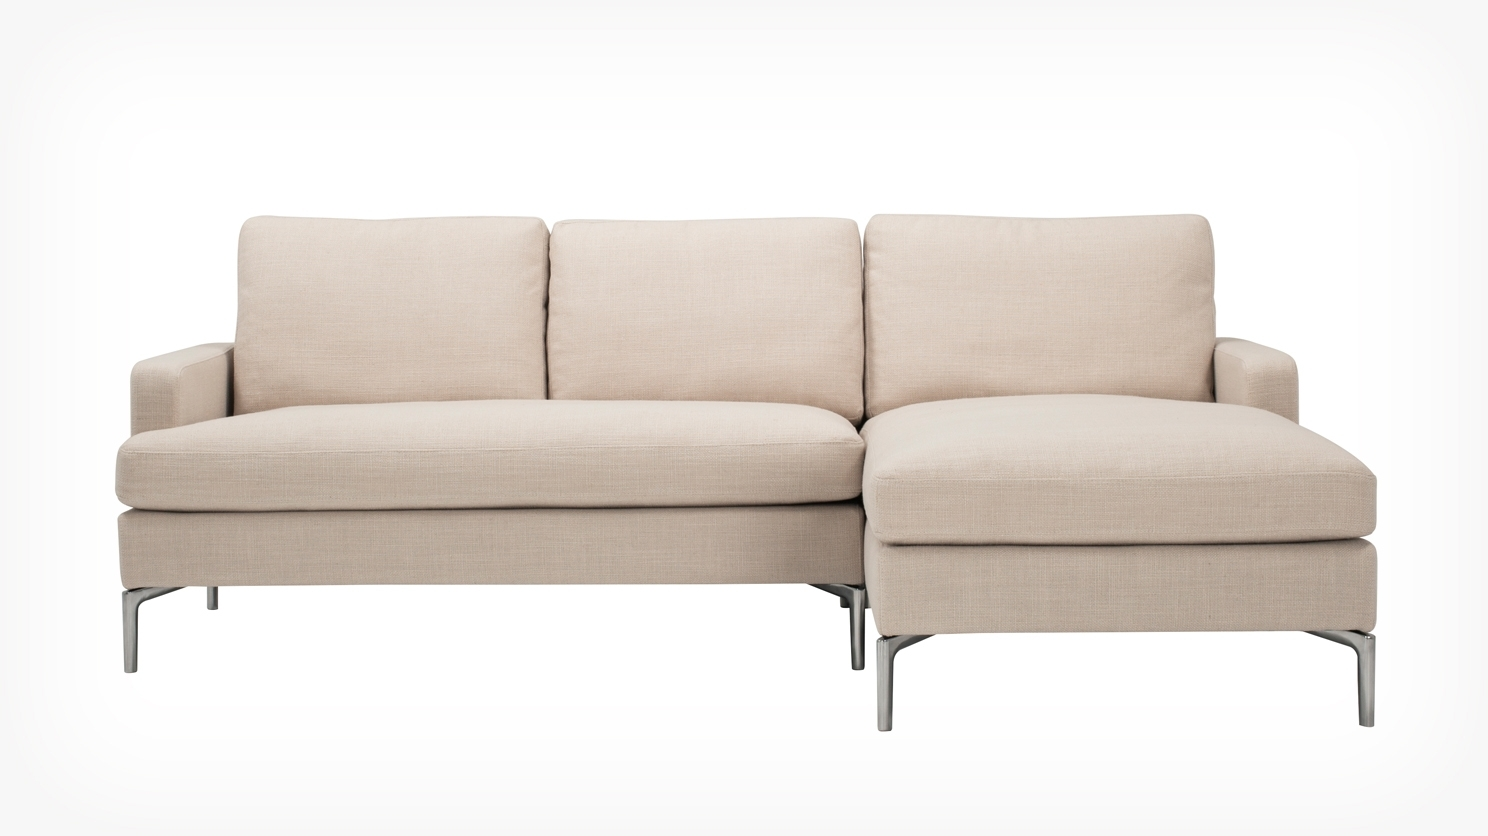 3 Pieces Small Sectional Beige Sofa With Chaise And Skinny Chrome Within Preferred Small Sofa Chaises (View 1 of 15)